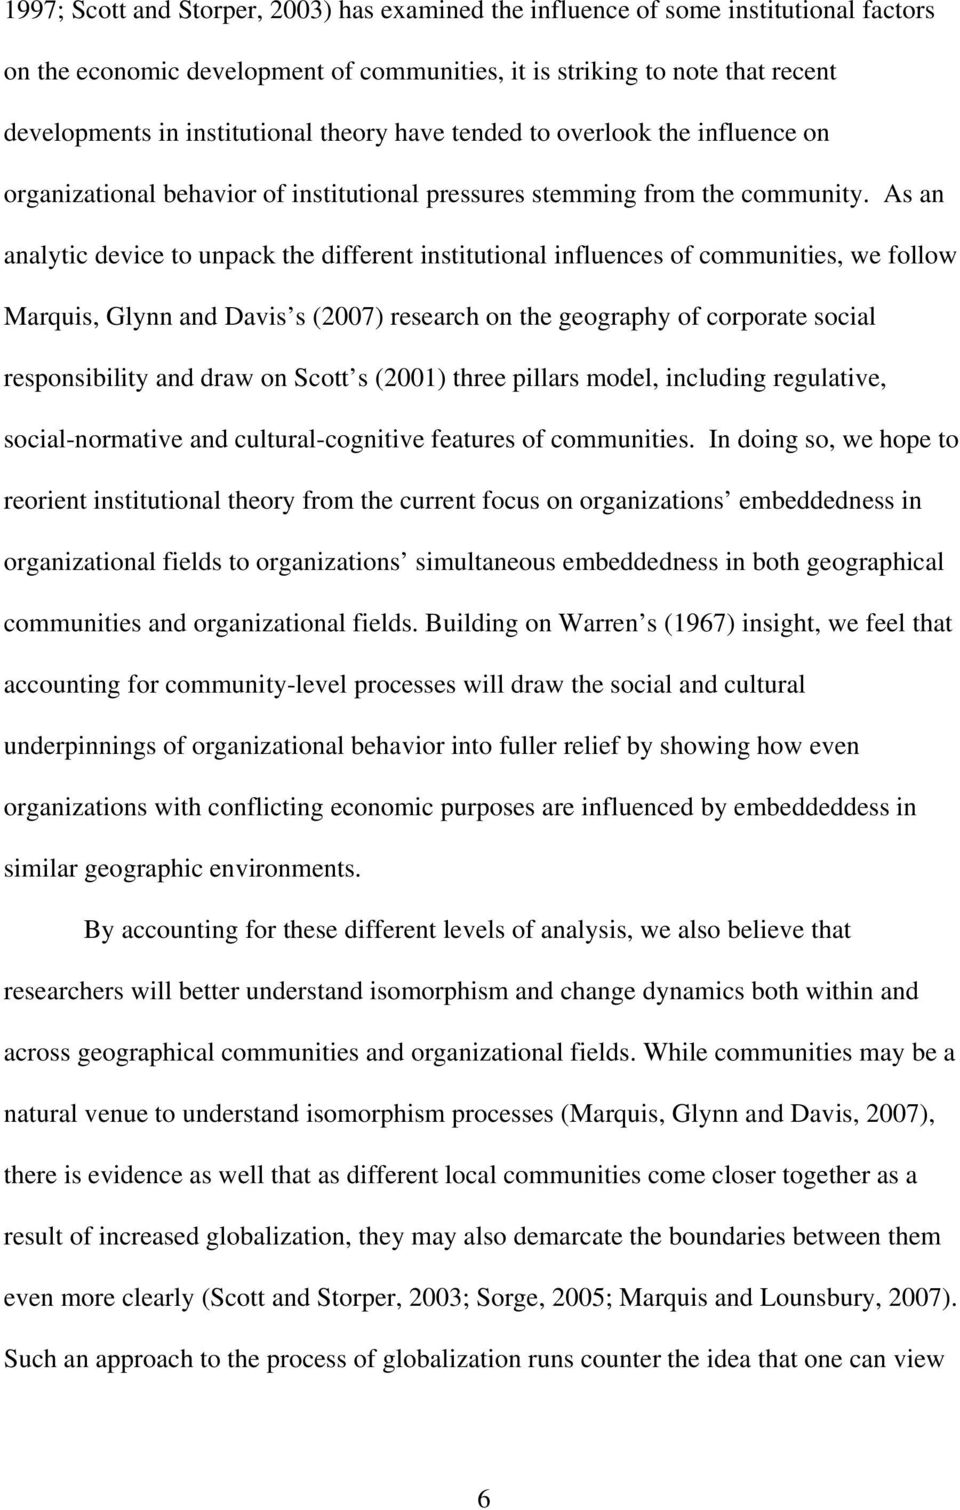 As an analytic device to unpack the different institutional influences of communities, we follow Marquis, Glynn and Davis s (2007) research on the geography of corporate social responsibility and